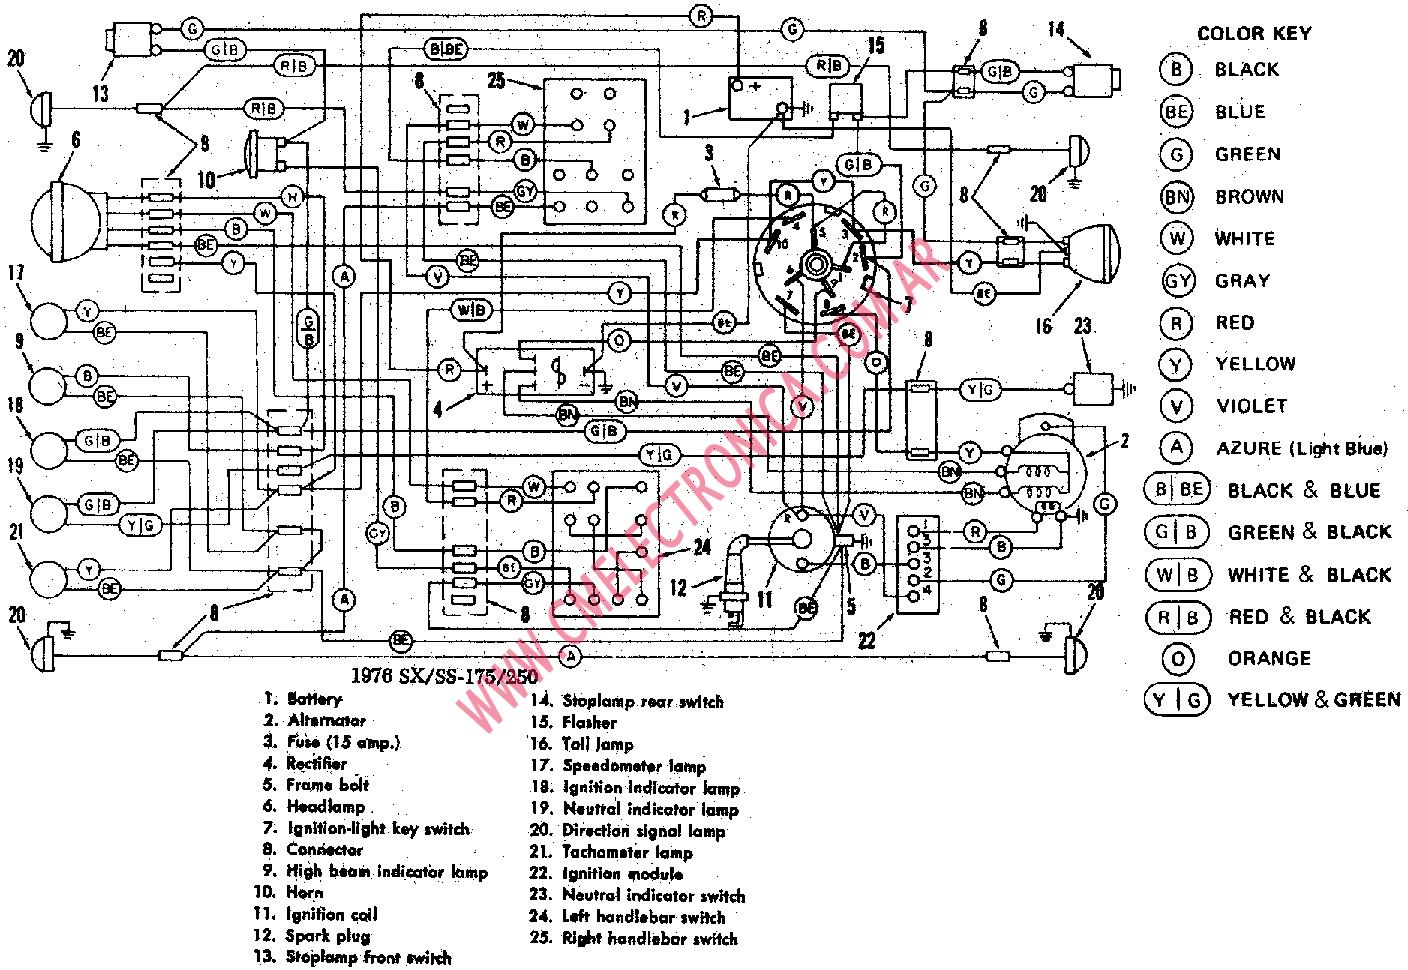 zr 500 motor diagram  zr  free engine image for user Residential Electrical Wiring Diagrams Basic Electrical Wiring Diagrams